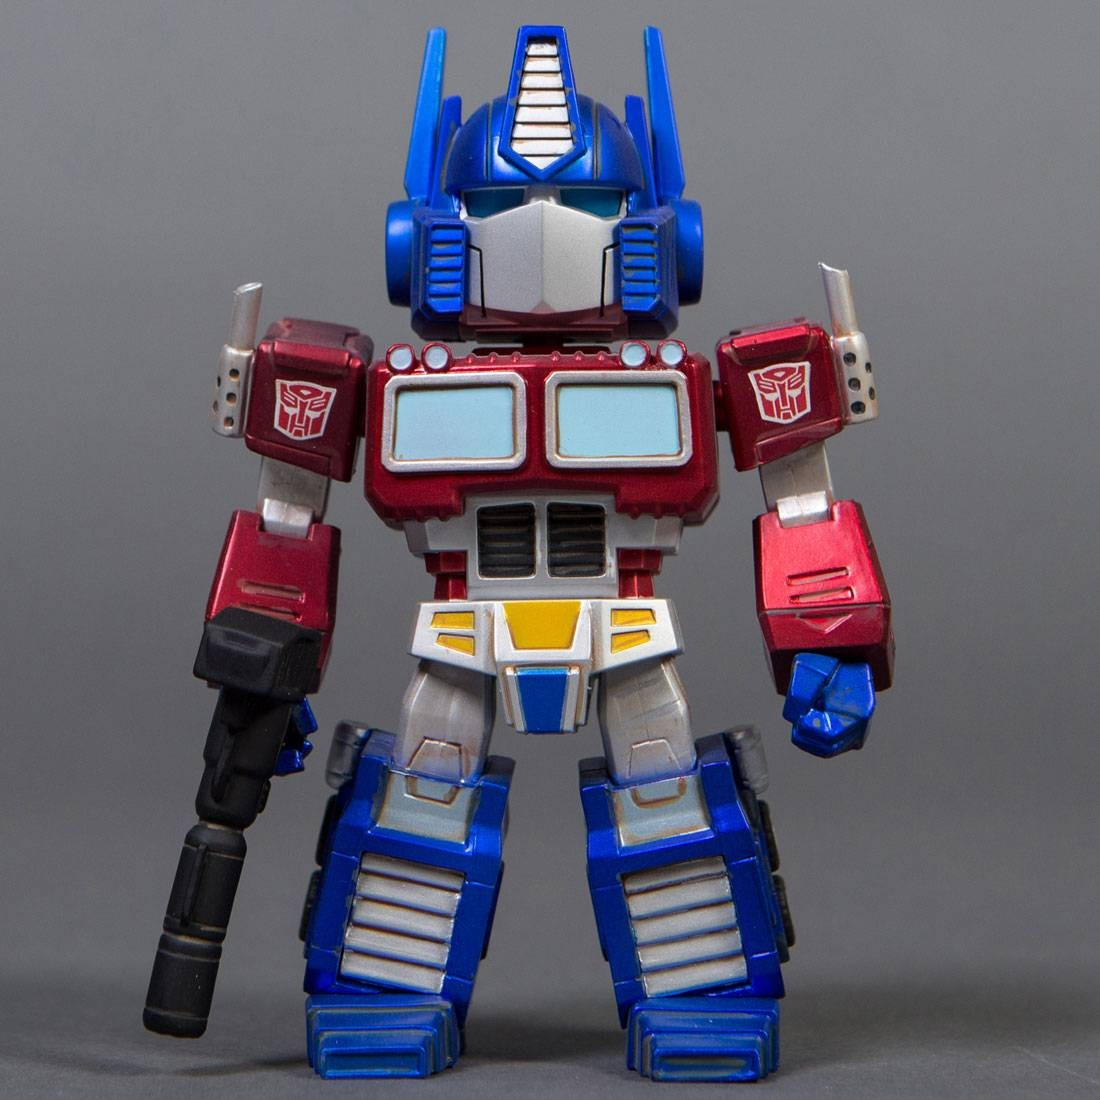 BAIT x Transformers x Switch Collectibles Optimus Prime 4.5 Inch Figure - Antique Metals Edition